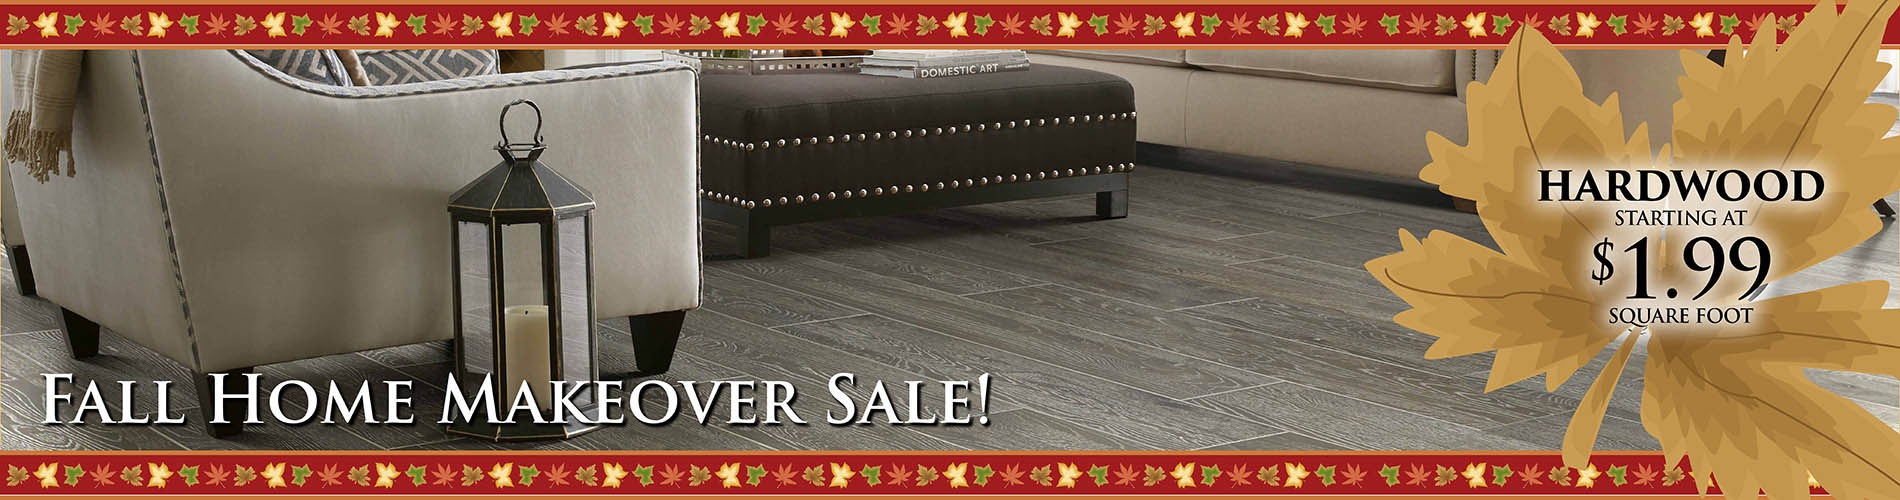 Hardwood starting at $1.99 sq.ft.